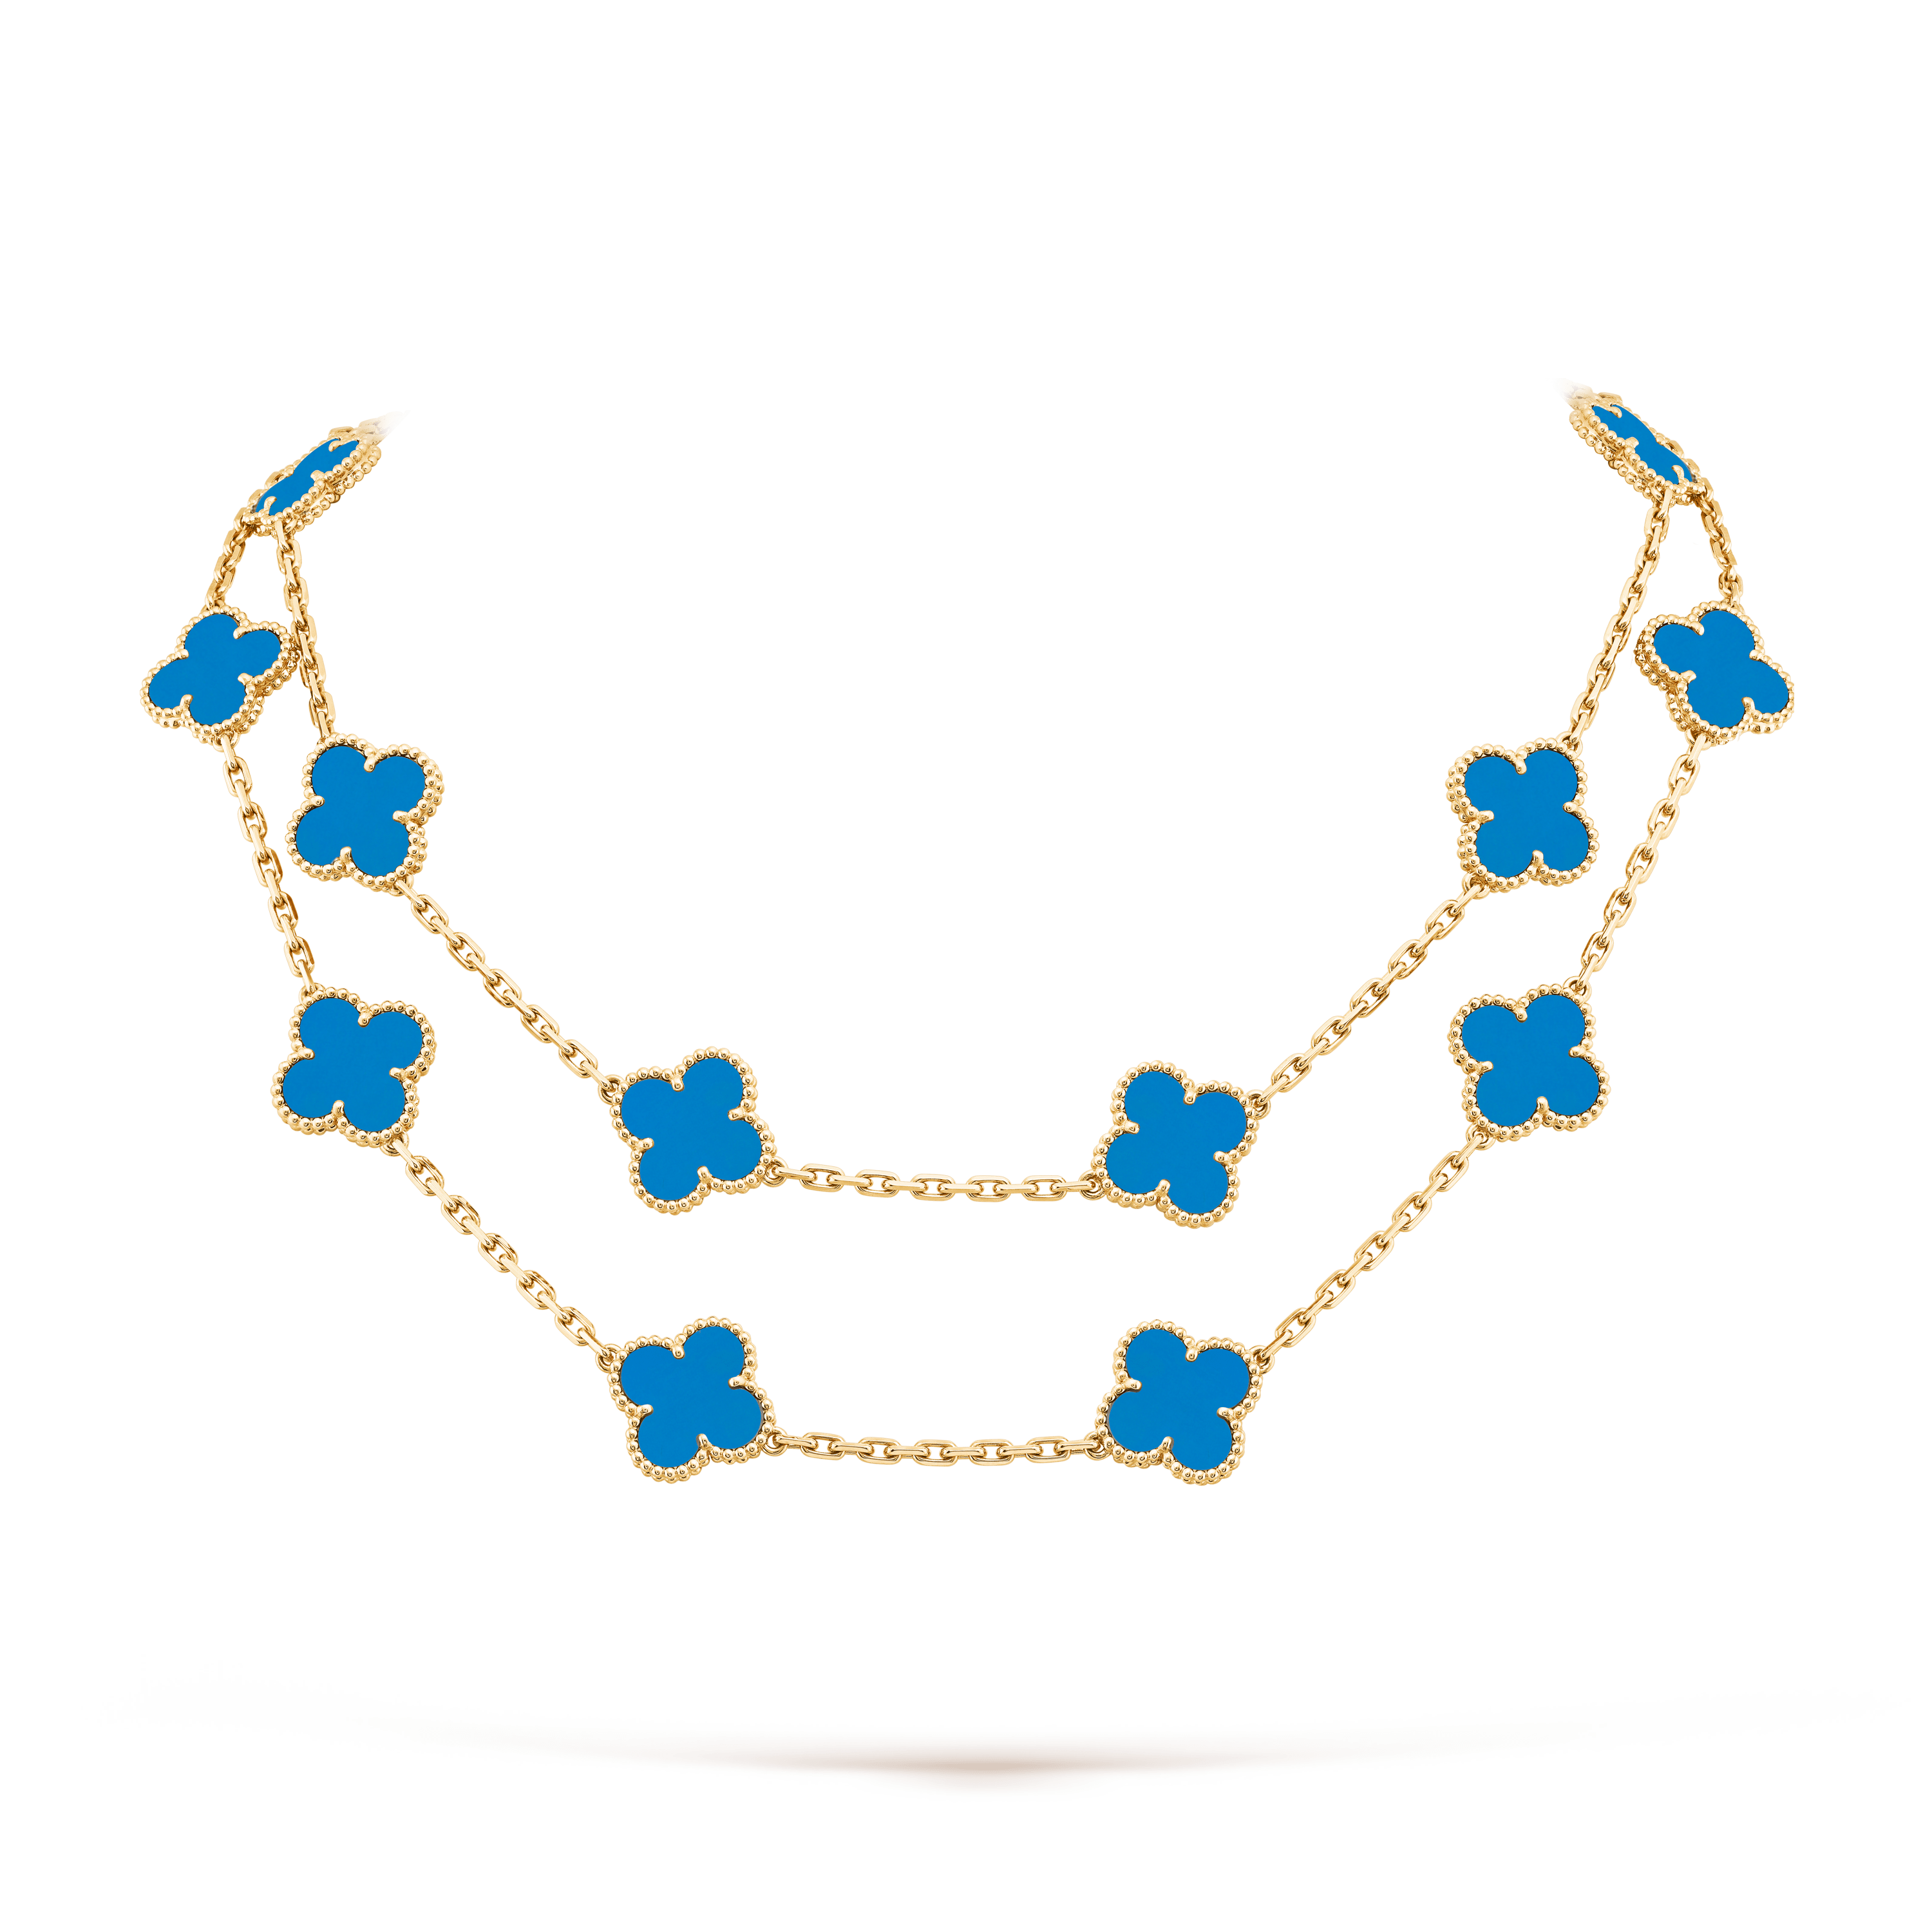 Vintage Alhambra long necklace, 20 motifs, Yellow gold, Agate:  20 stones, Detail, Jewelry Long Necklace